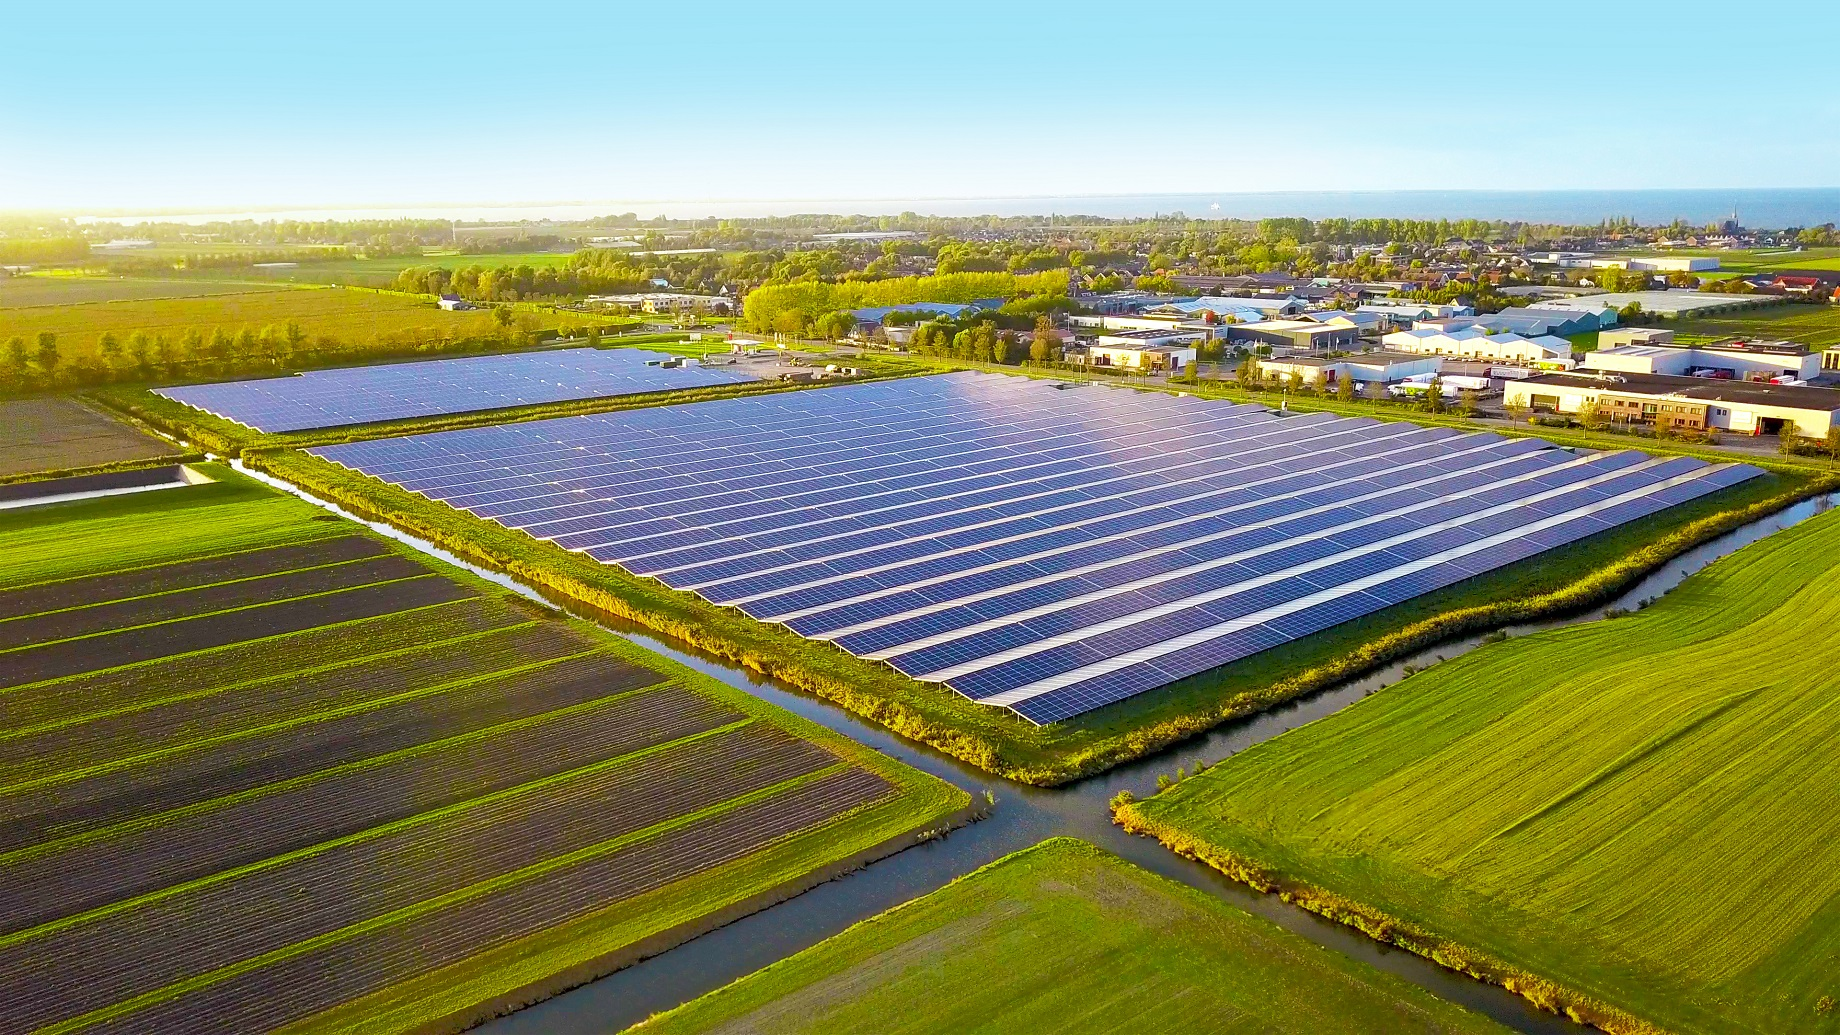 Chint Solar's 15MW project in Andijk, The Netherlands. Source: Chint Solar.